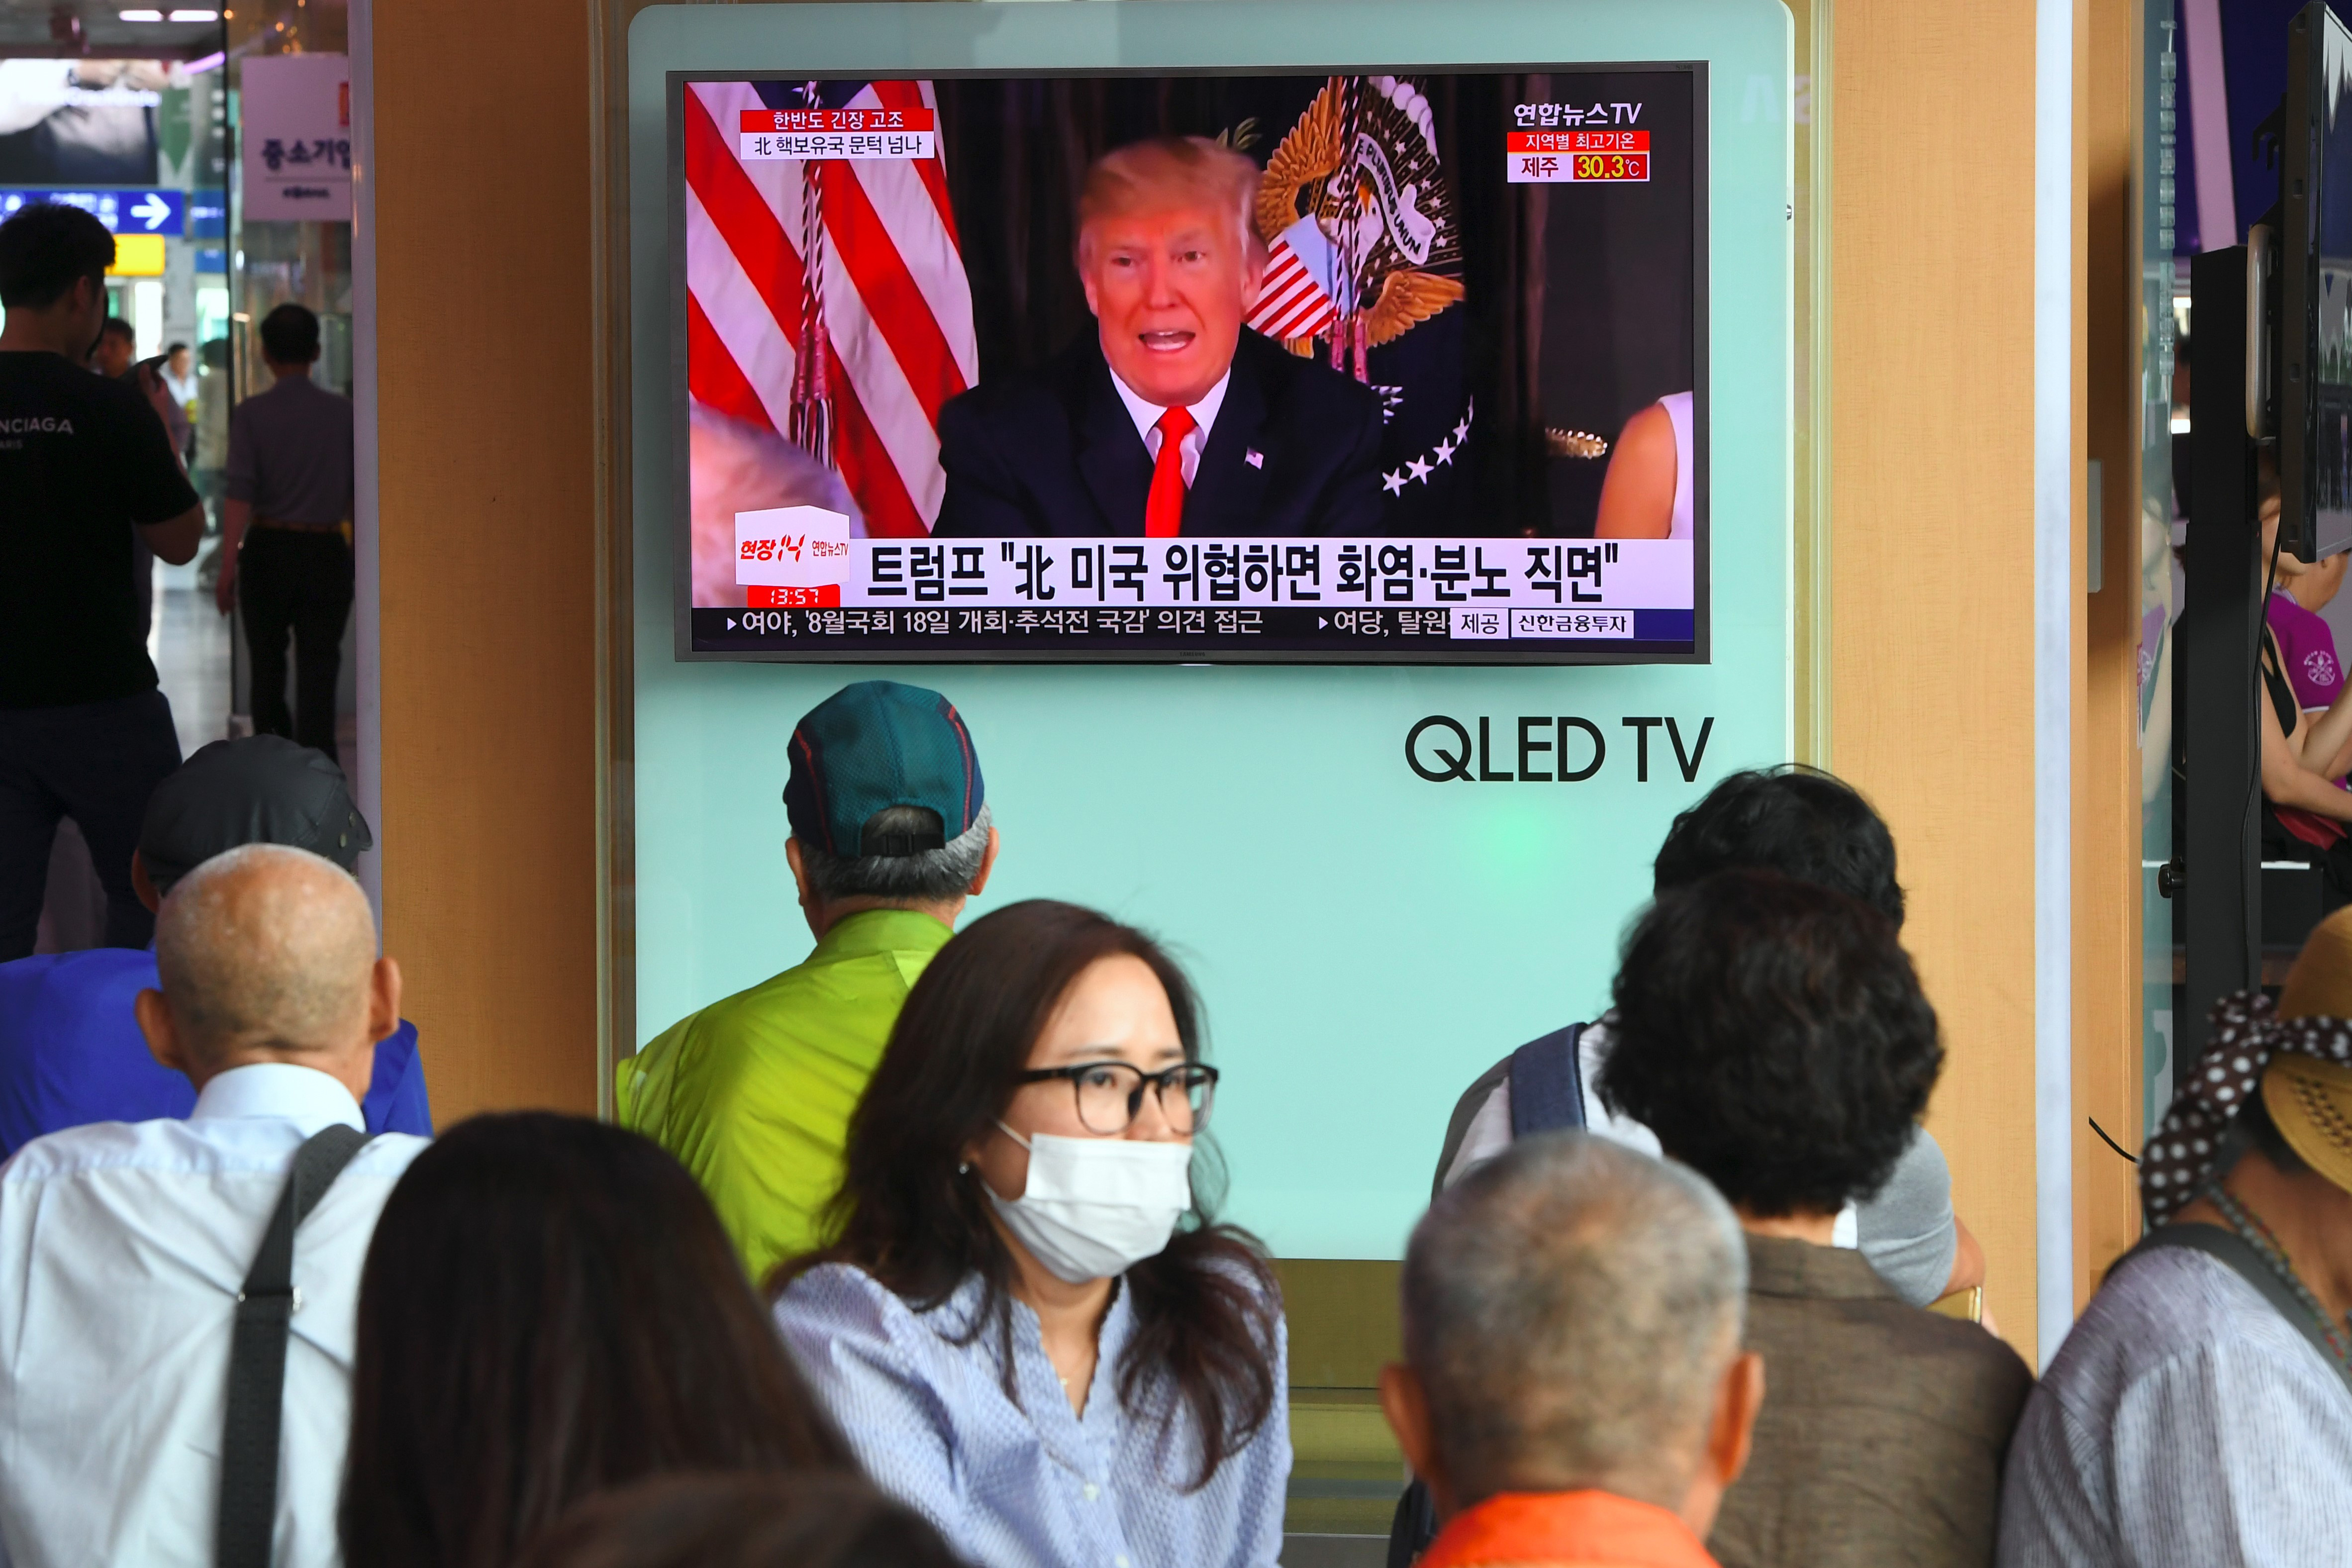 Donald Trump appears on a TV screen with Korean text. People stand watching.